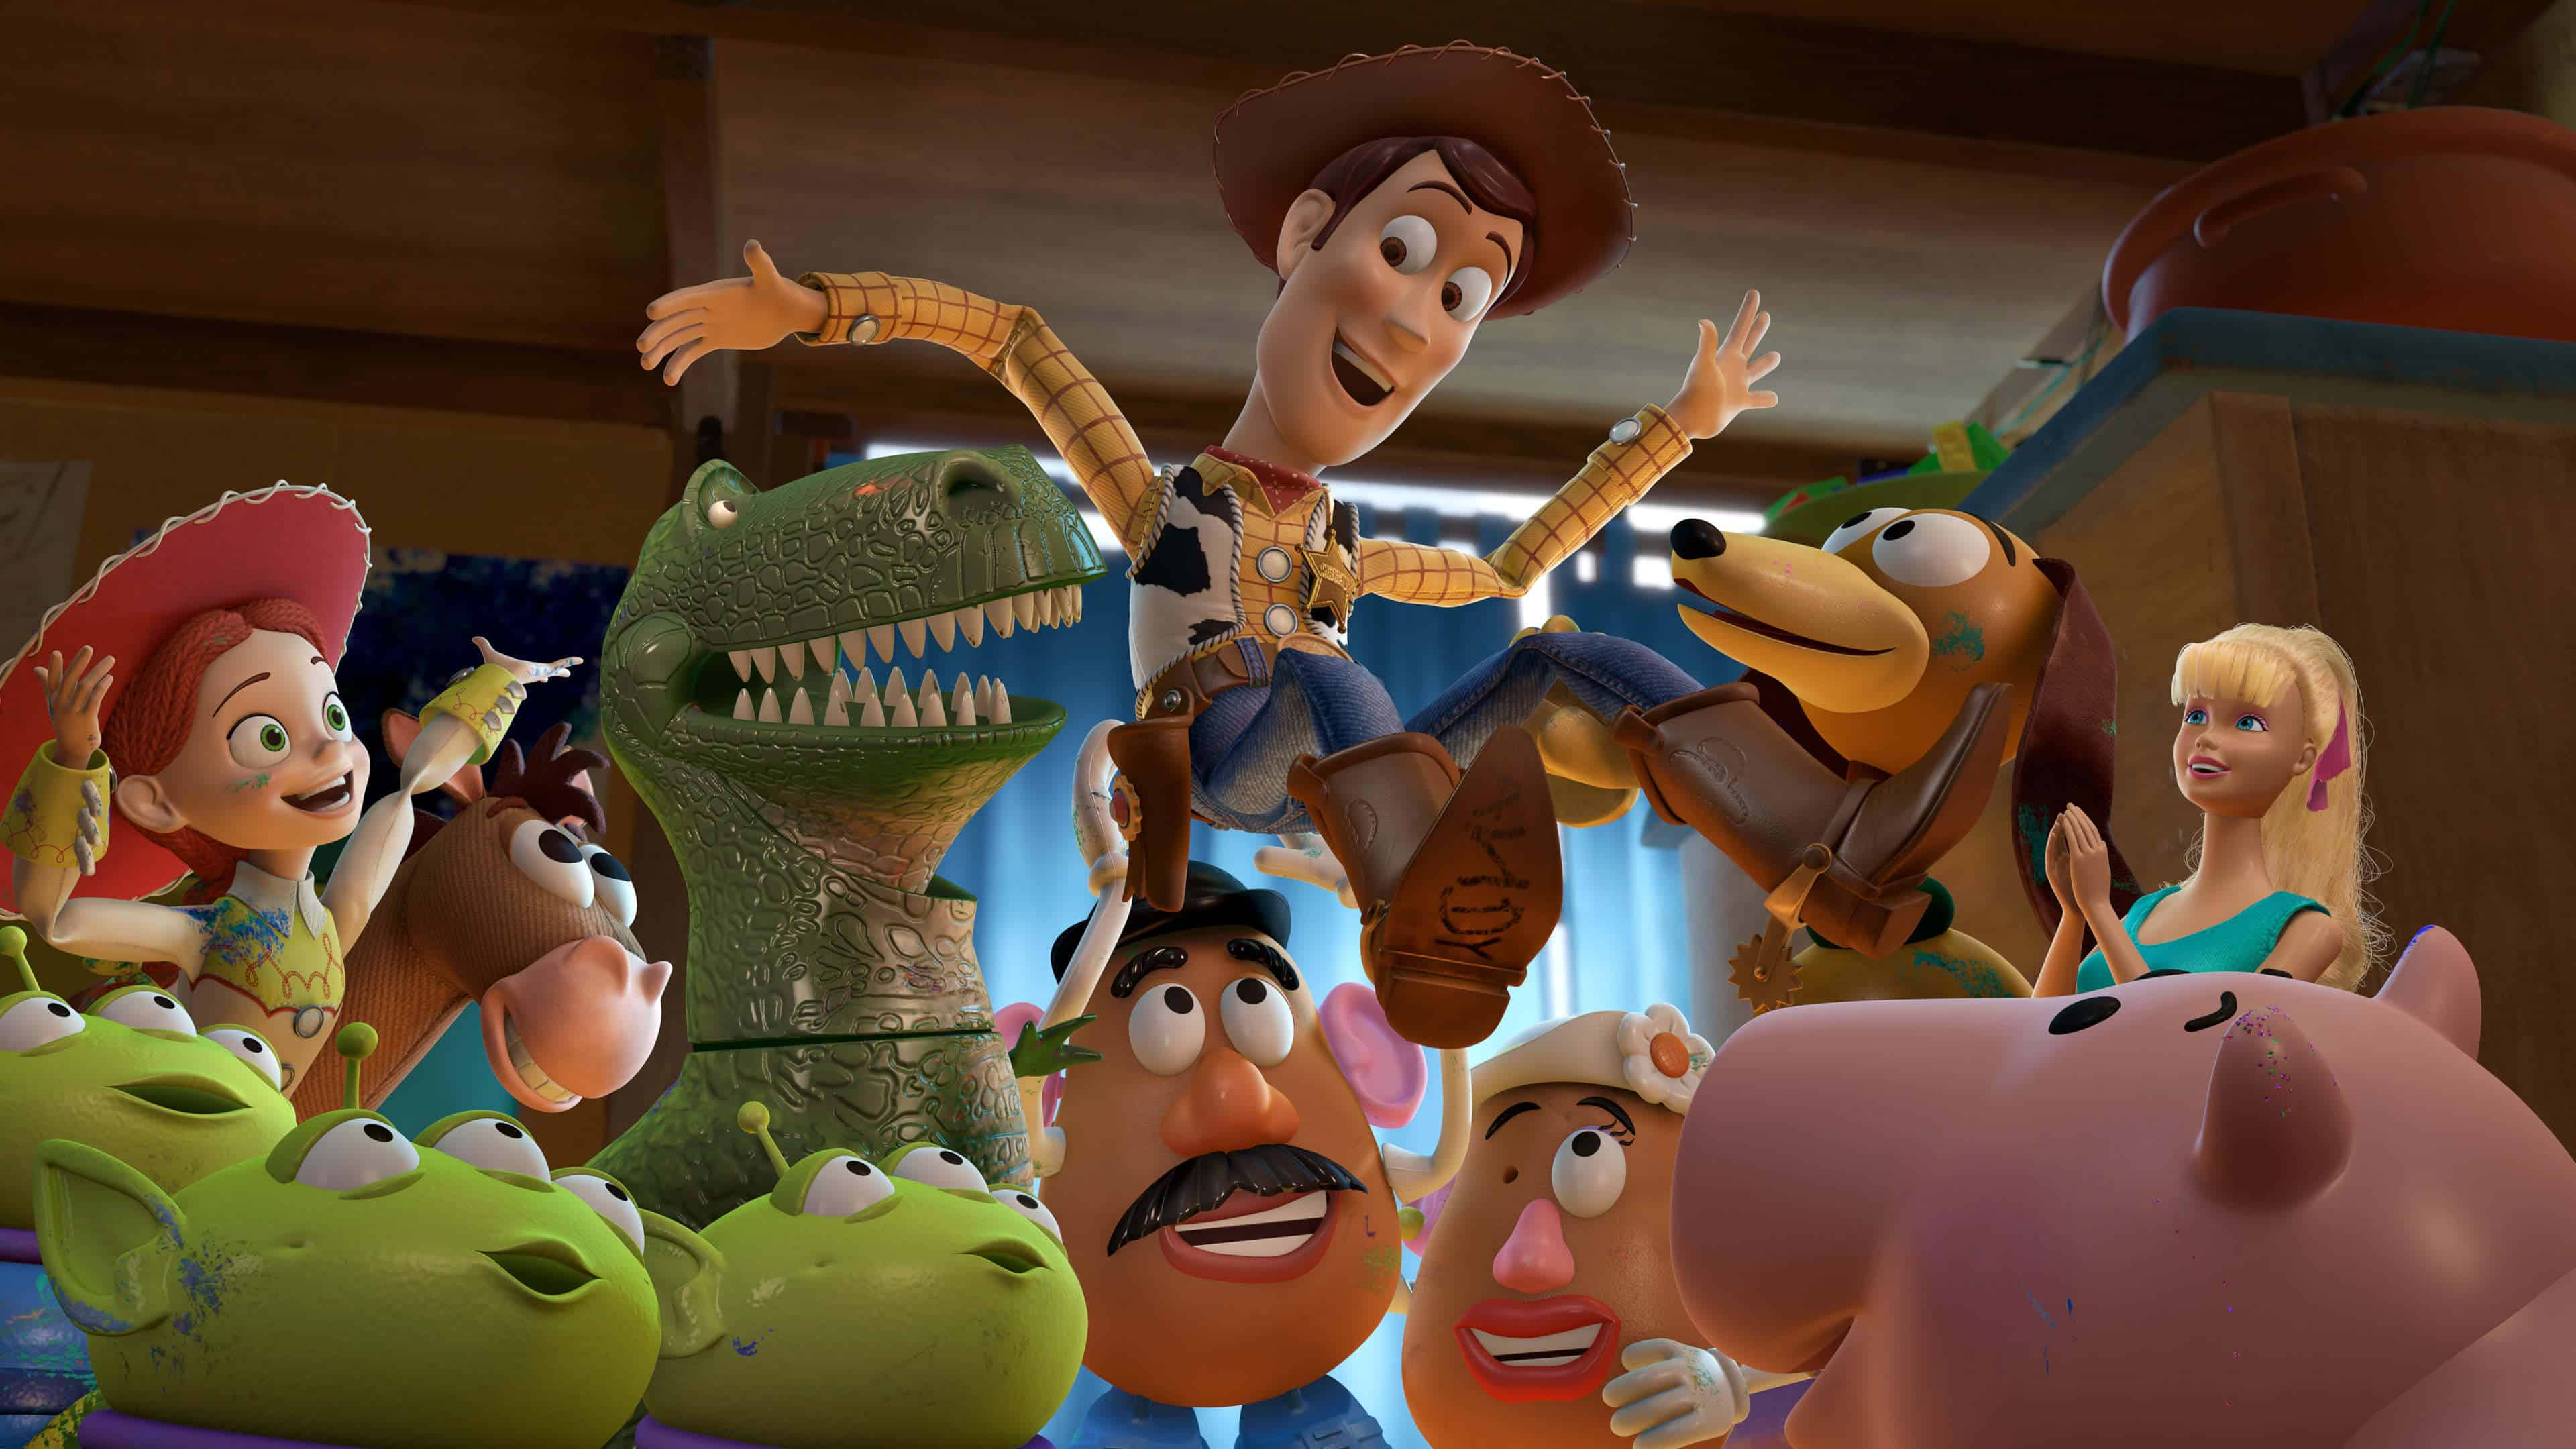 toy story hd background wallpaper 72690